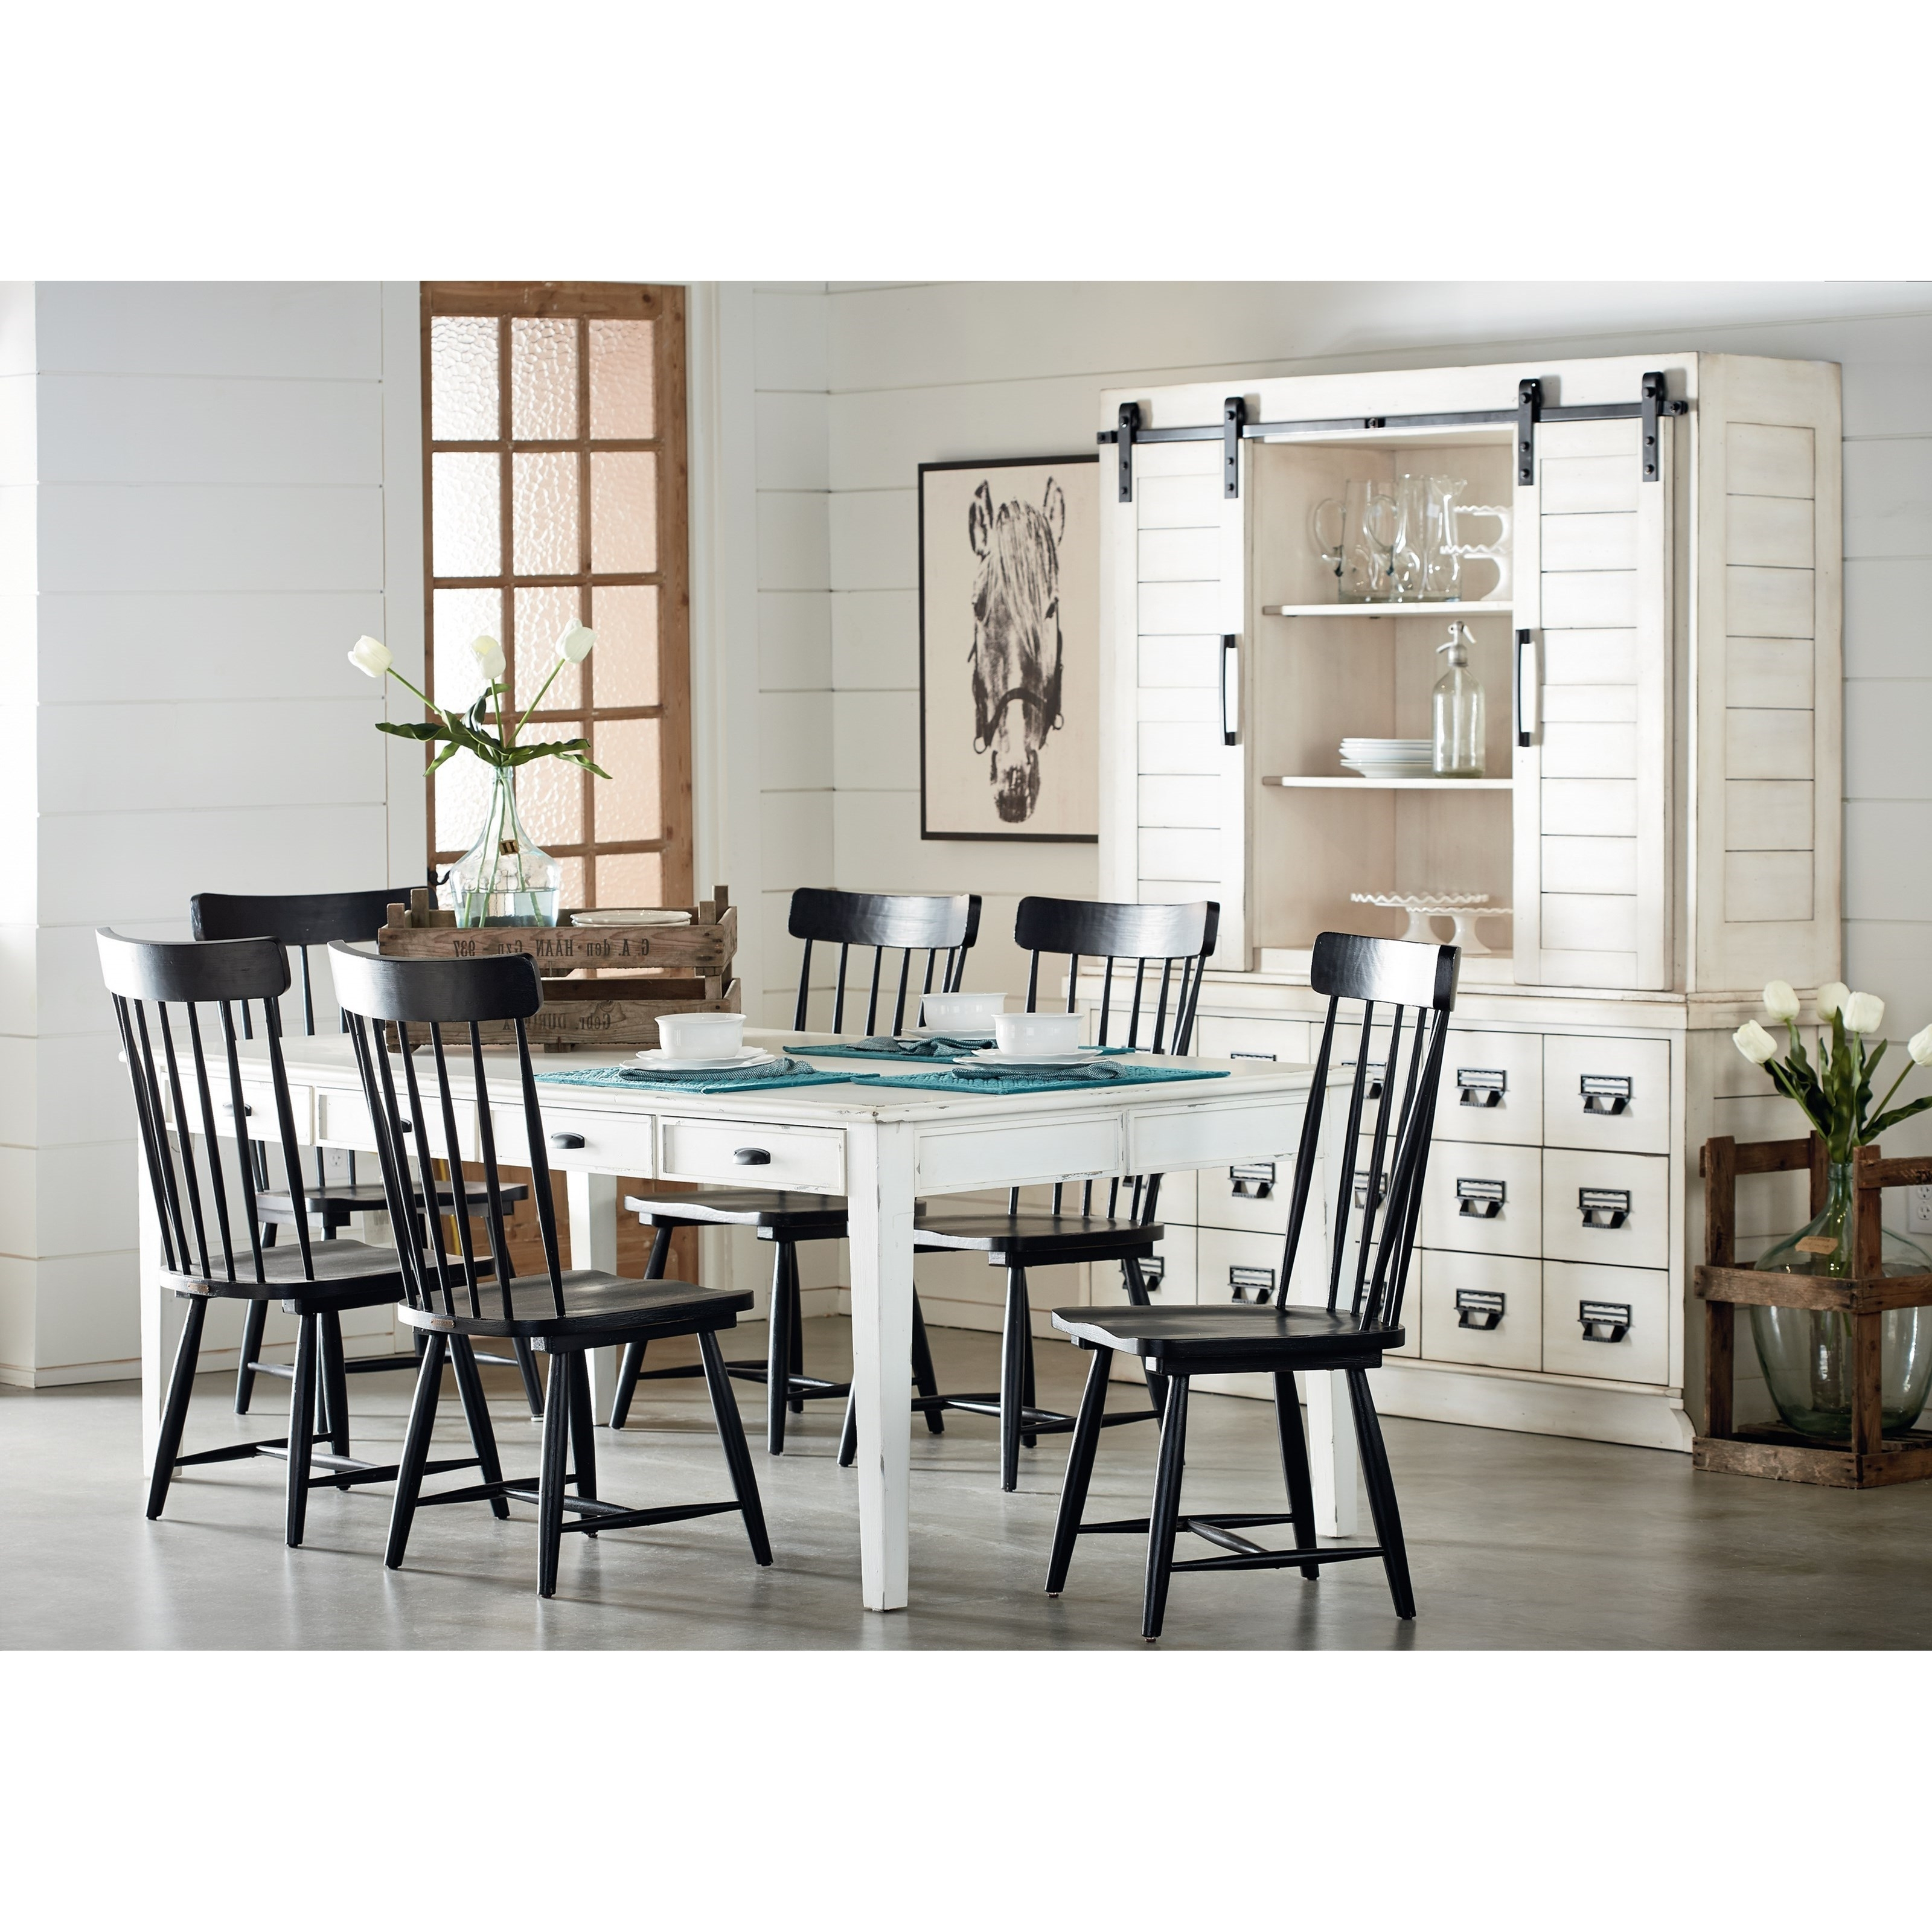 Magnolia Home Array Dining Tables By Joanna Gaines In Well Known What Makes You Feel Most At Home For The Holidays? – Zak's Facts (View 20 of 25)